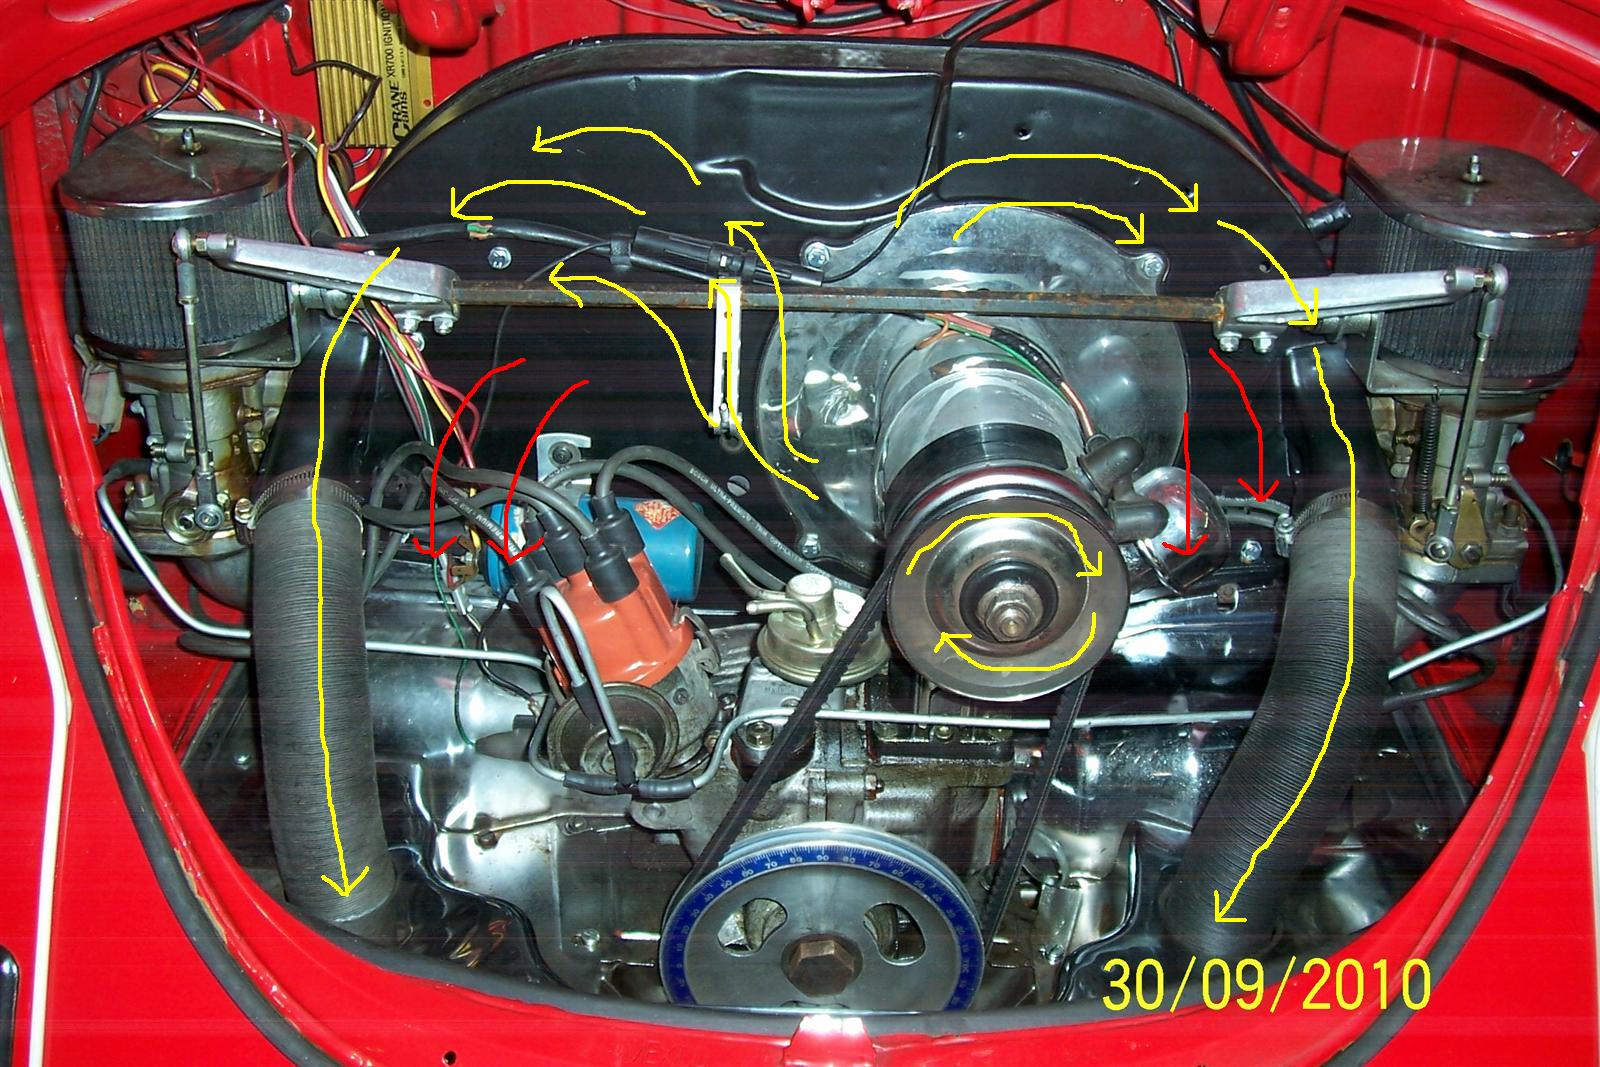 1974 volkswagen beetle engine diagram share the knownledge wiringthesamba com beetle late model super 1968 up view topic 1974 volkswagen beetle engine diagram share the knownledge